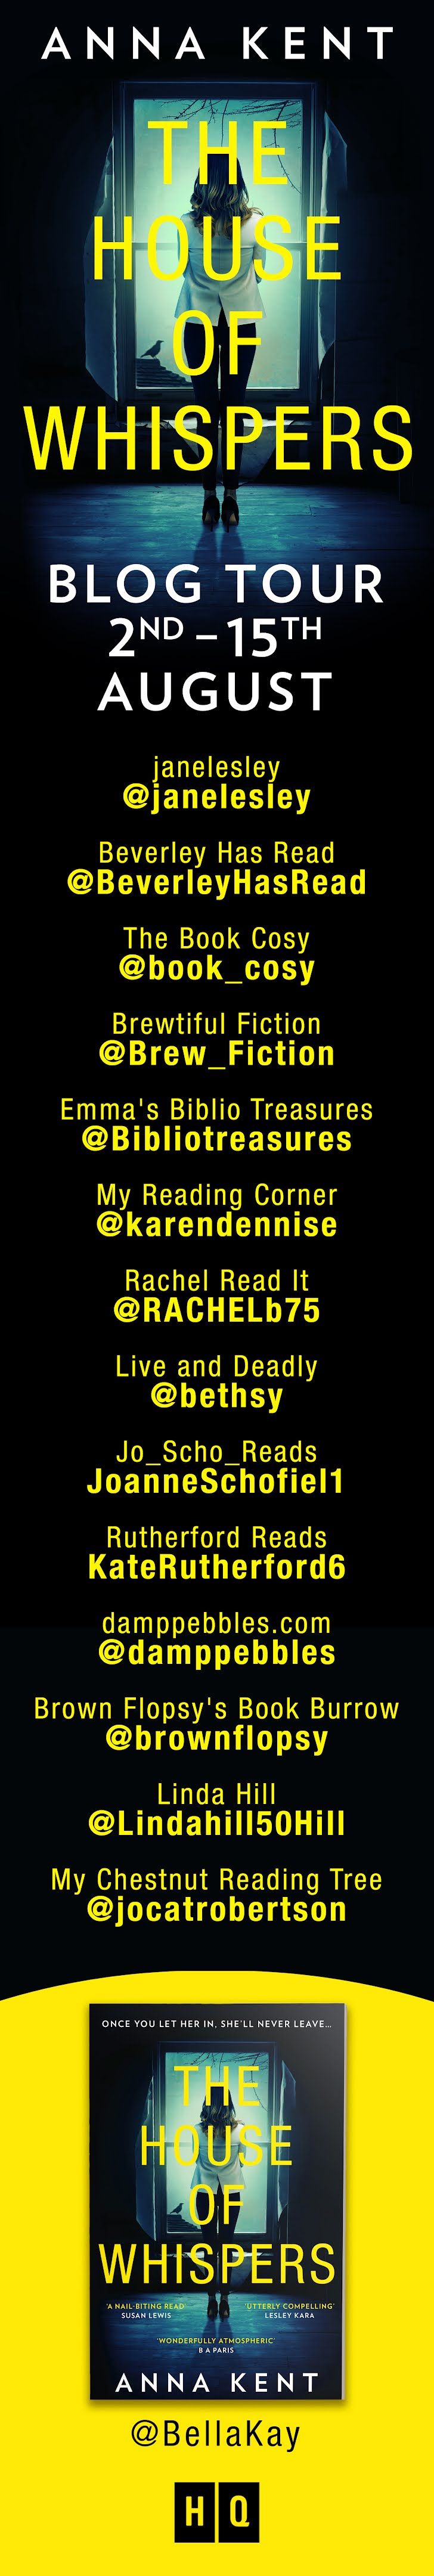 house-of-whispers-blog-tour